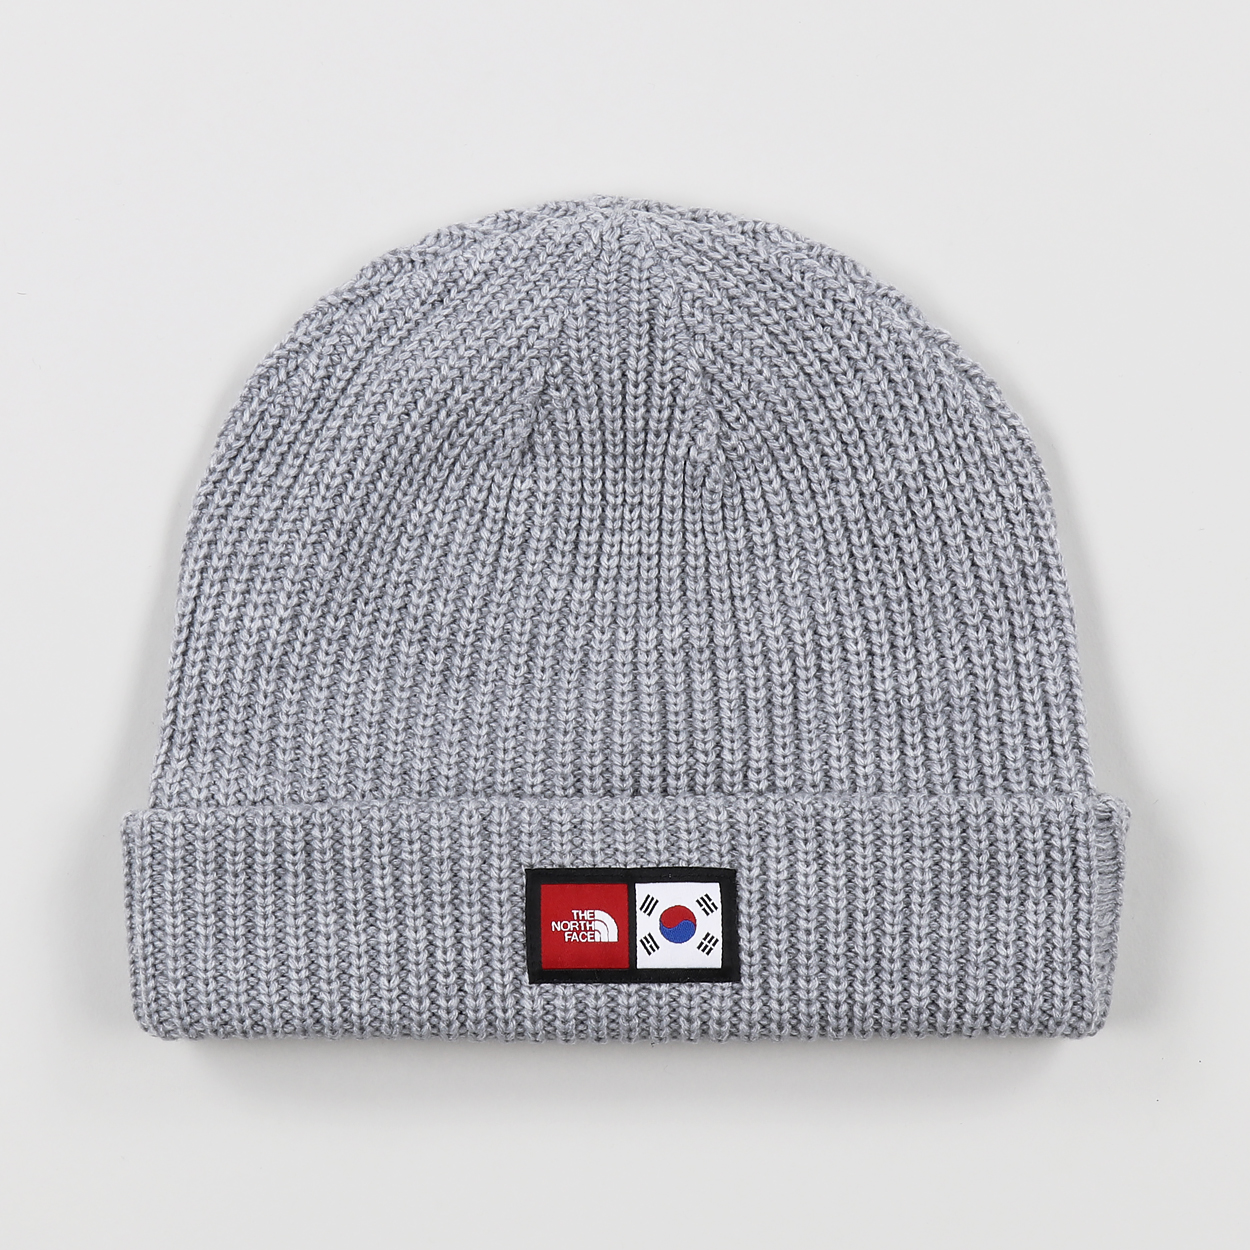 96399aba6 The North Face IC Label Beanie Light Grey Heather £18.00